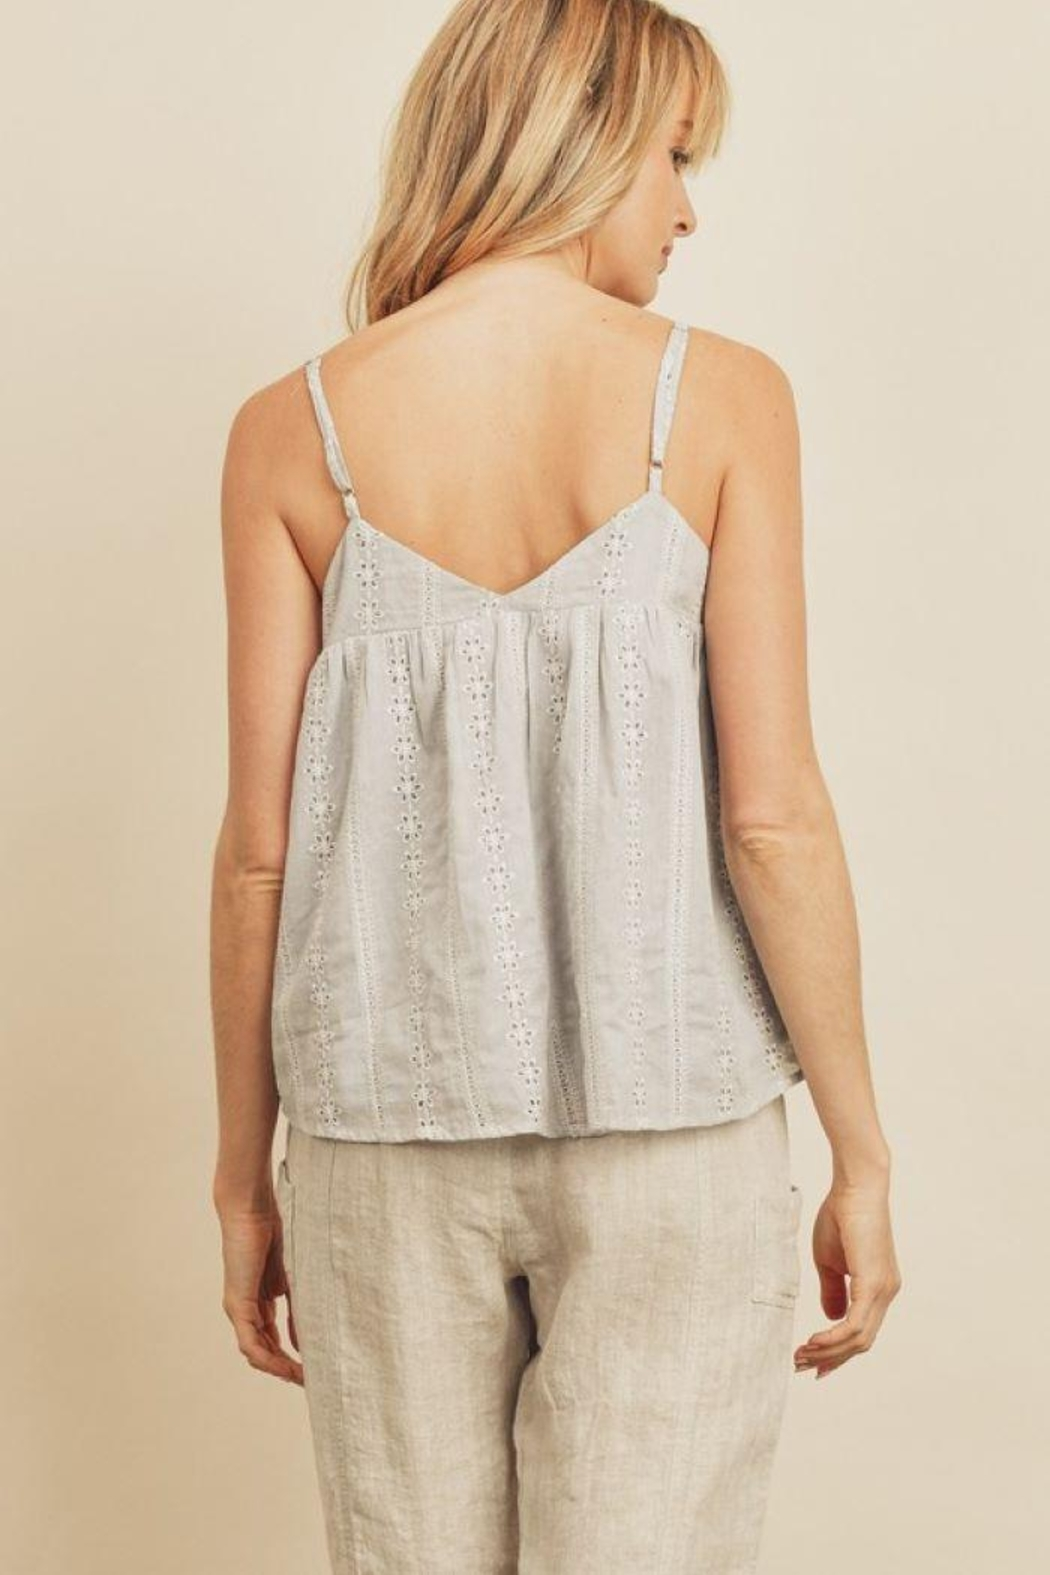 dress forum Striped Eyelet Triangle Cami Top - Side Cropped Image